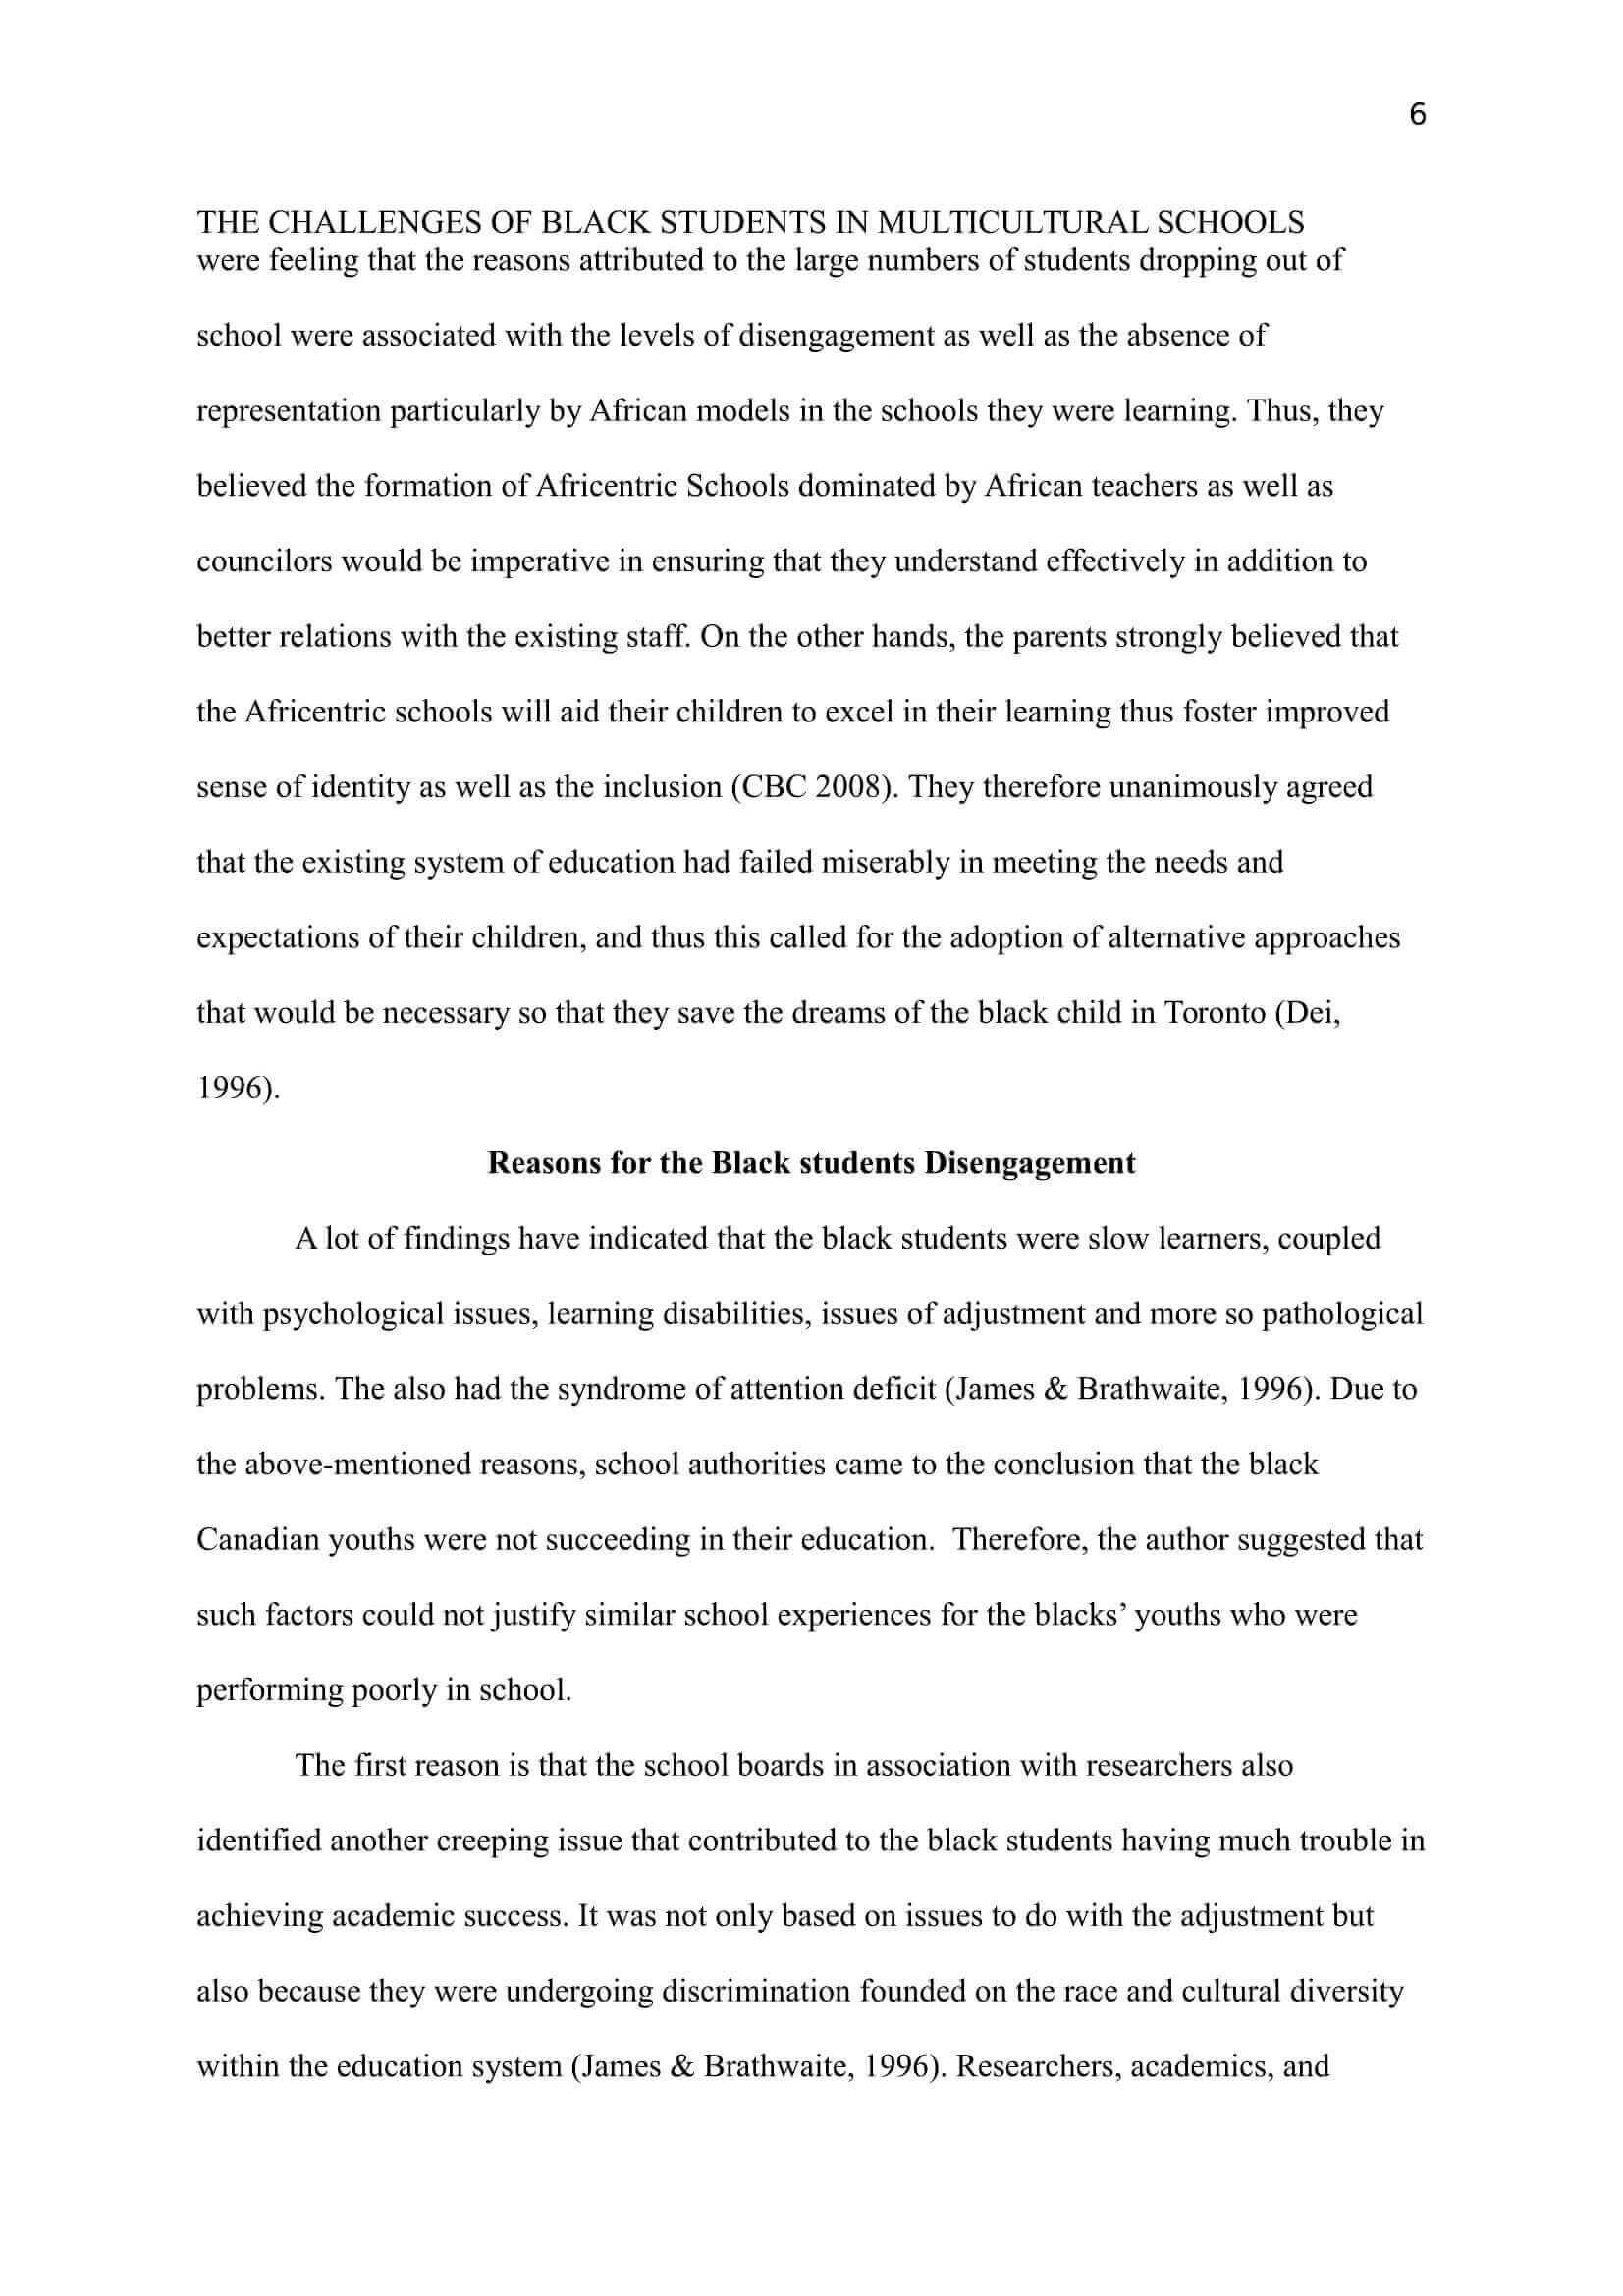 ghost writers thesis my childhood essay in french top analysis cheap university essay writer service for school submit excellent critical analysis paper the help of